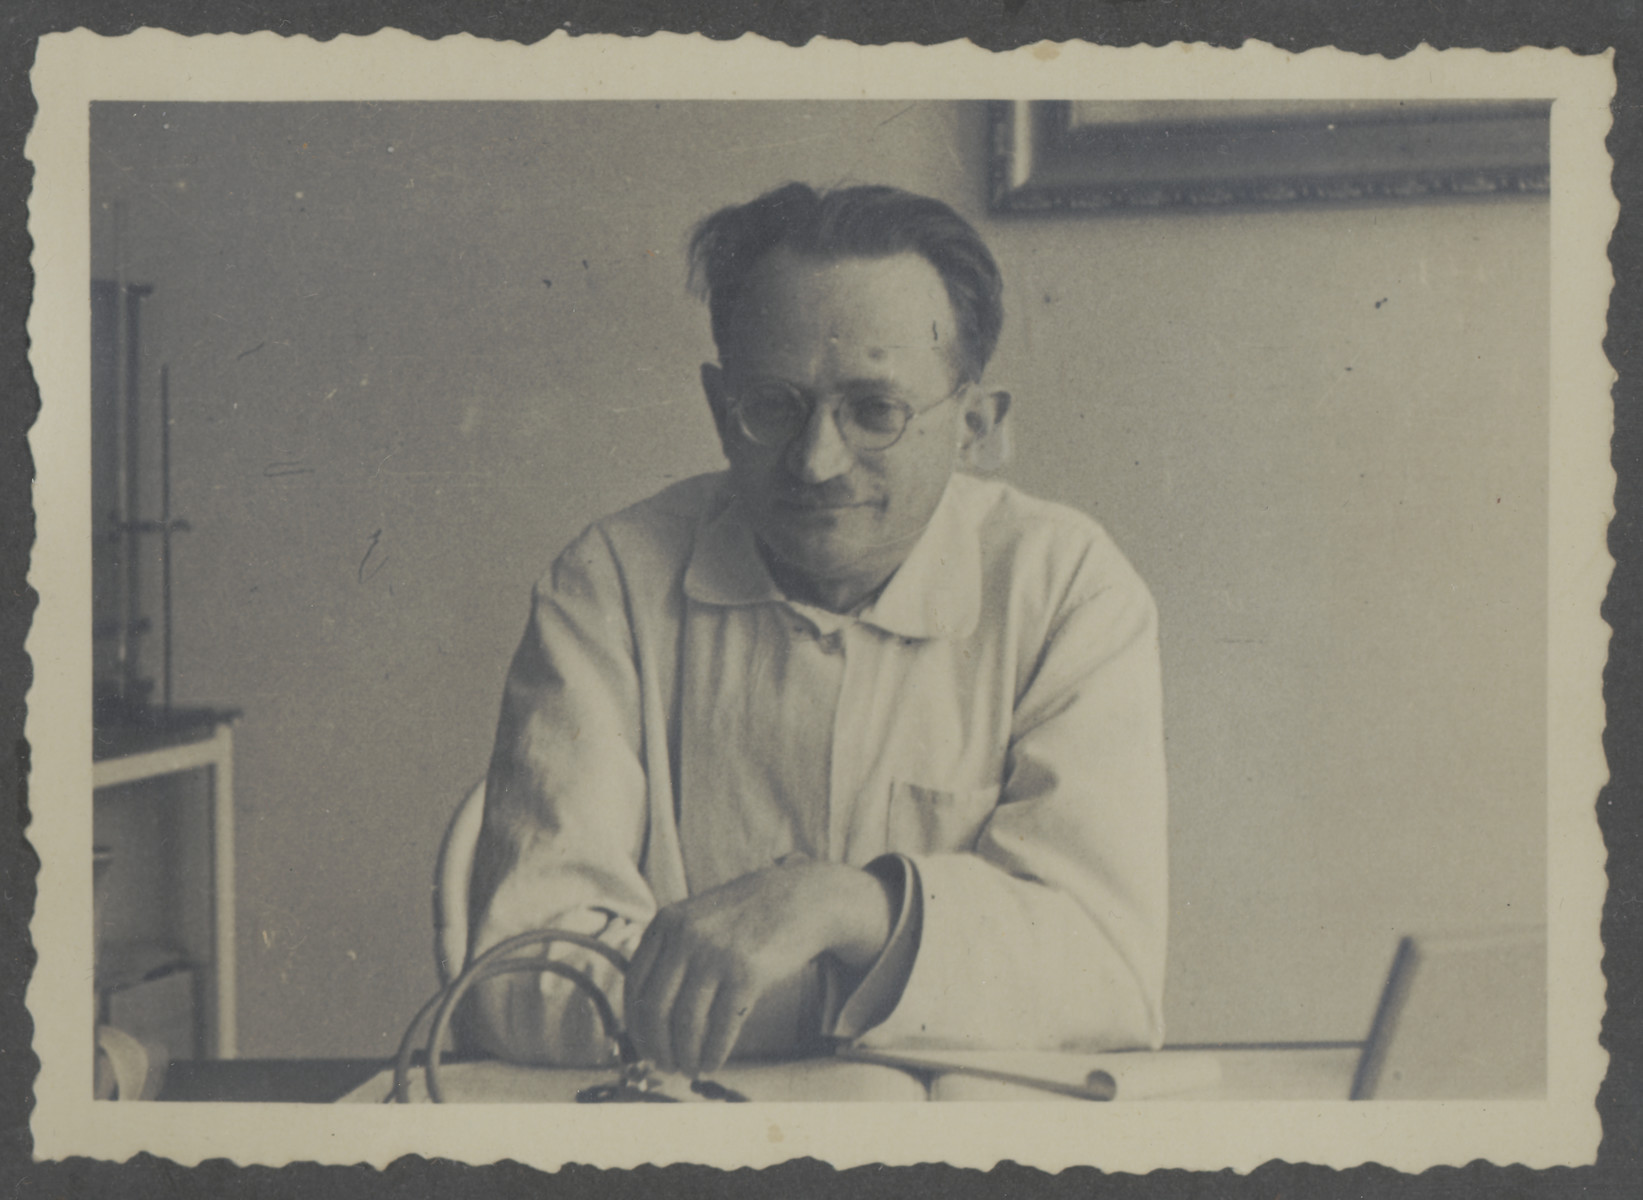 Close-up portrait of a Jewish physician in his office in Bielsko Biala.  Pictured is Dr. Adzio Zeilender, the uncle of the donor.  He and his family perished in the Holocaust.